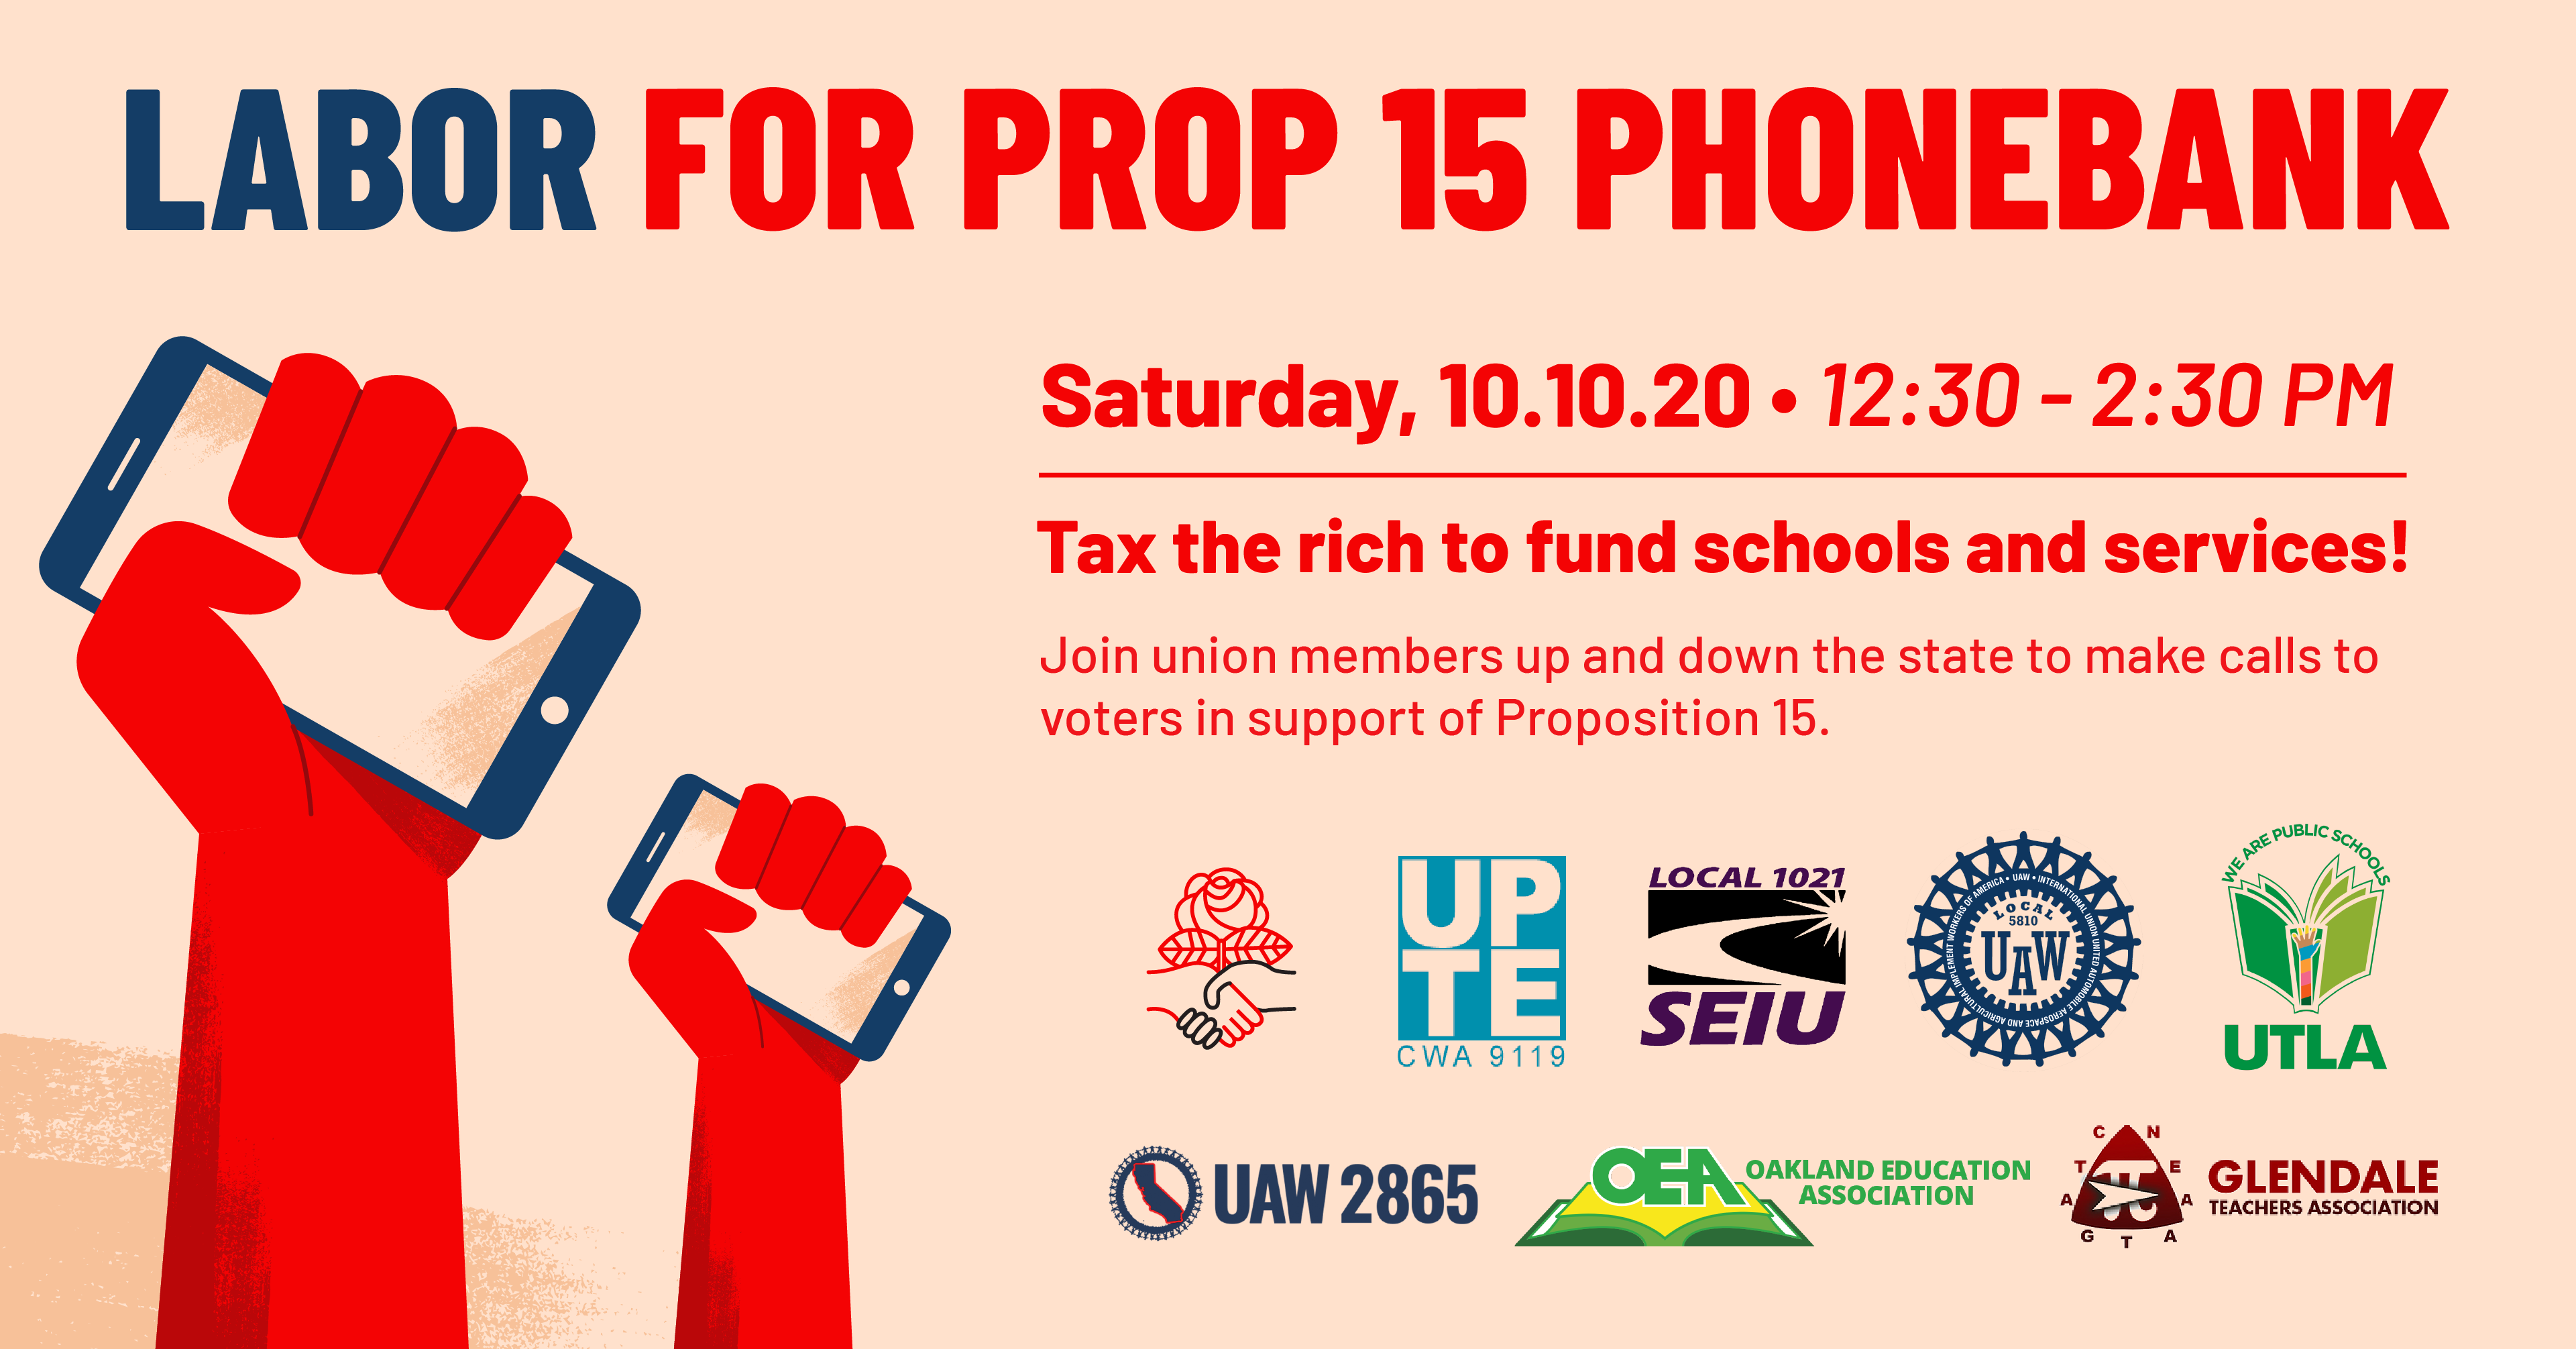 Labor for Prop 15